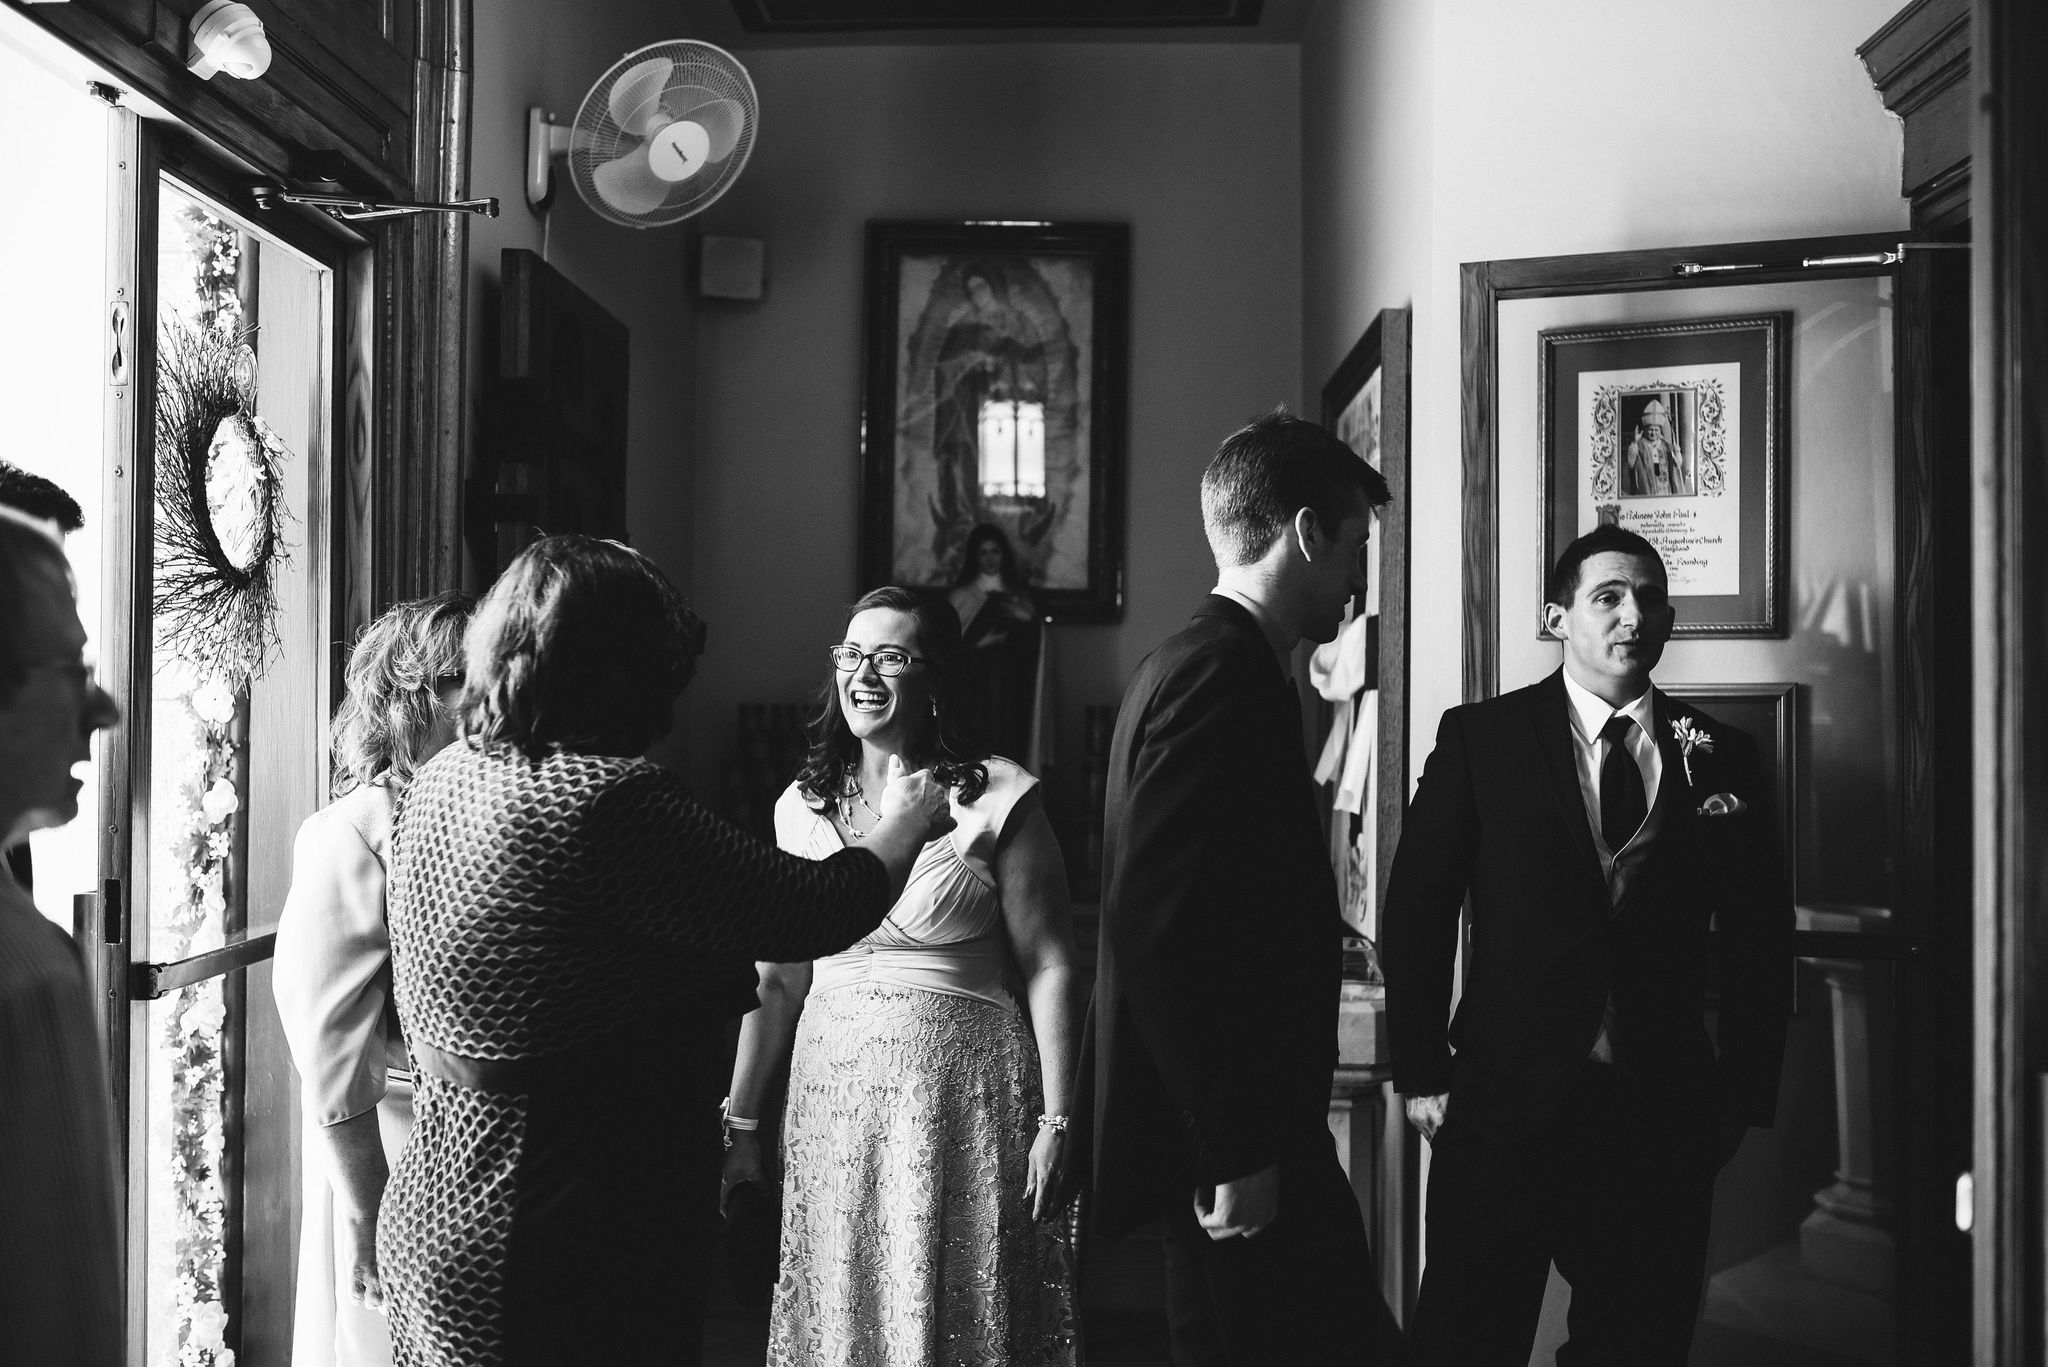 Baltimore, Church Wedding, Maryland Wedding Photographer, Vintage, Classic, Guests Arriving at Venue, Black and White Photo, Candid